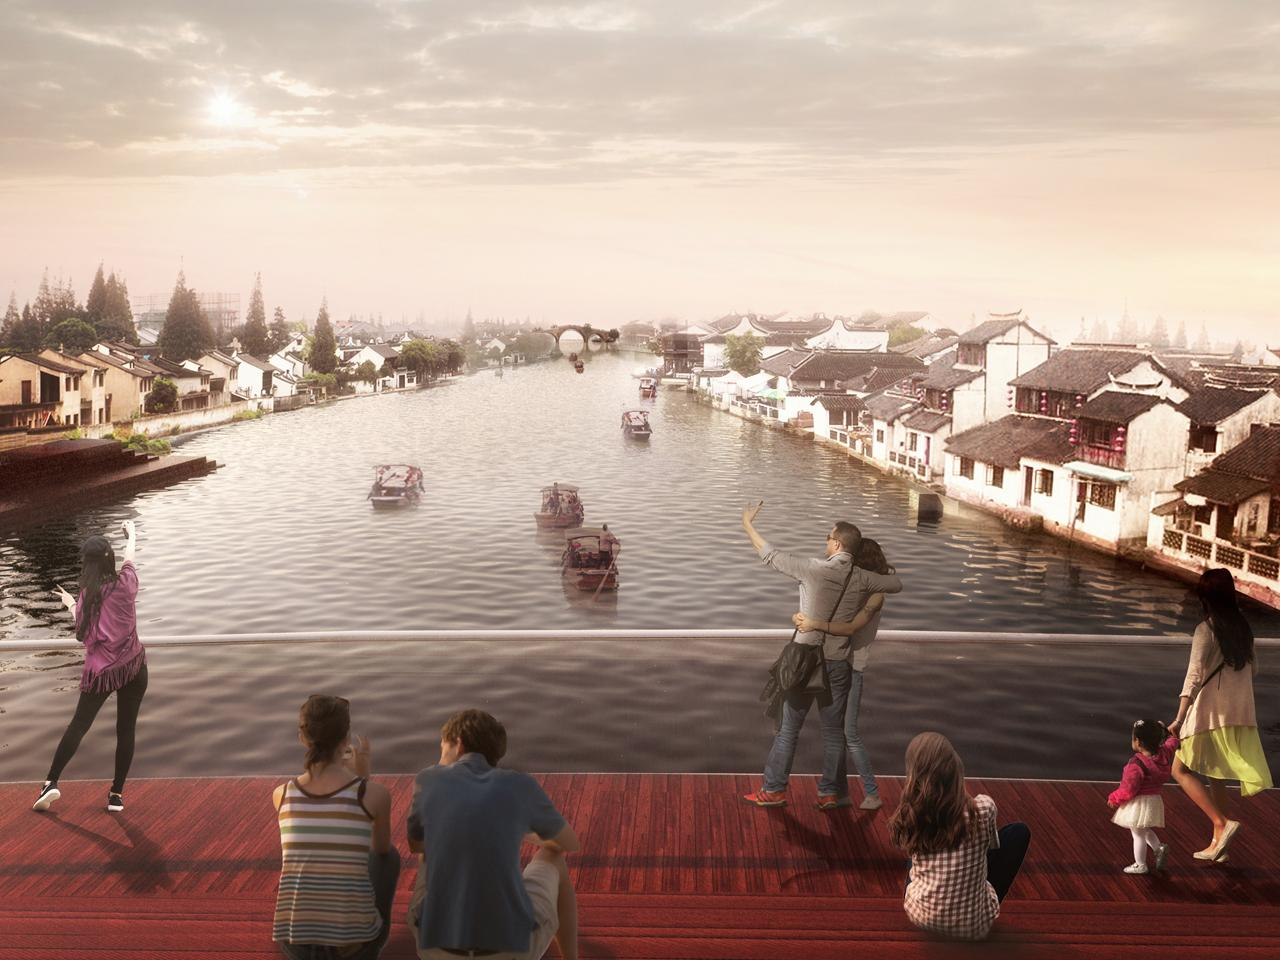 A viewing platform will allow people to gather and look downriver towards the 16th century Fangsheng Bridge and the surrounding ancient architecture / MVRDV